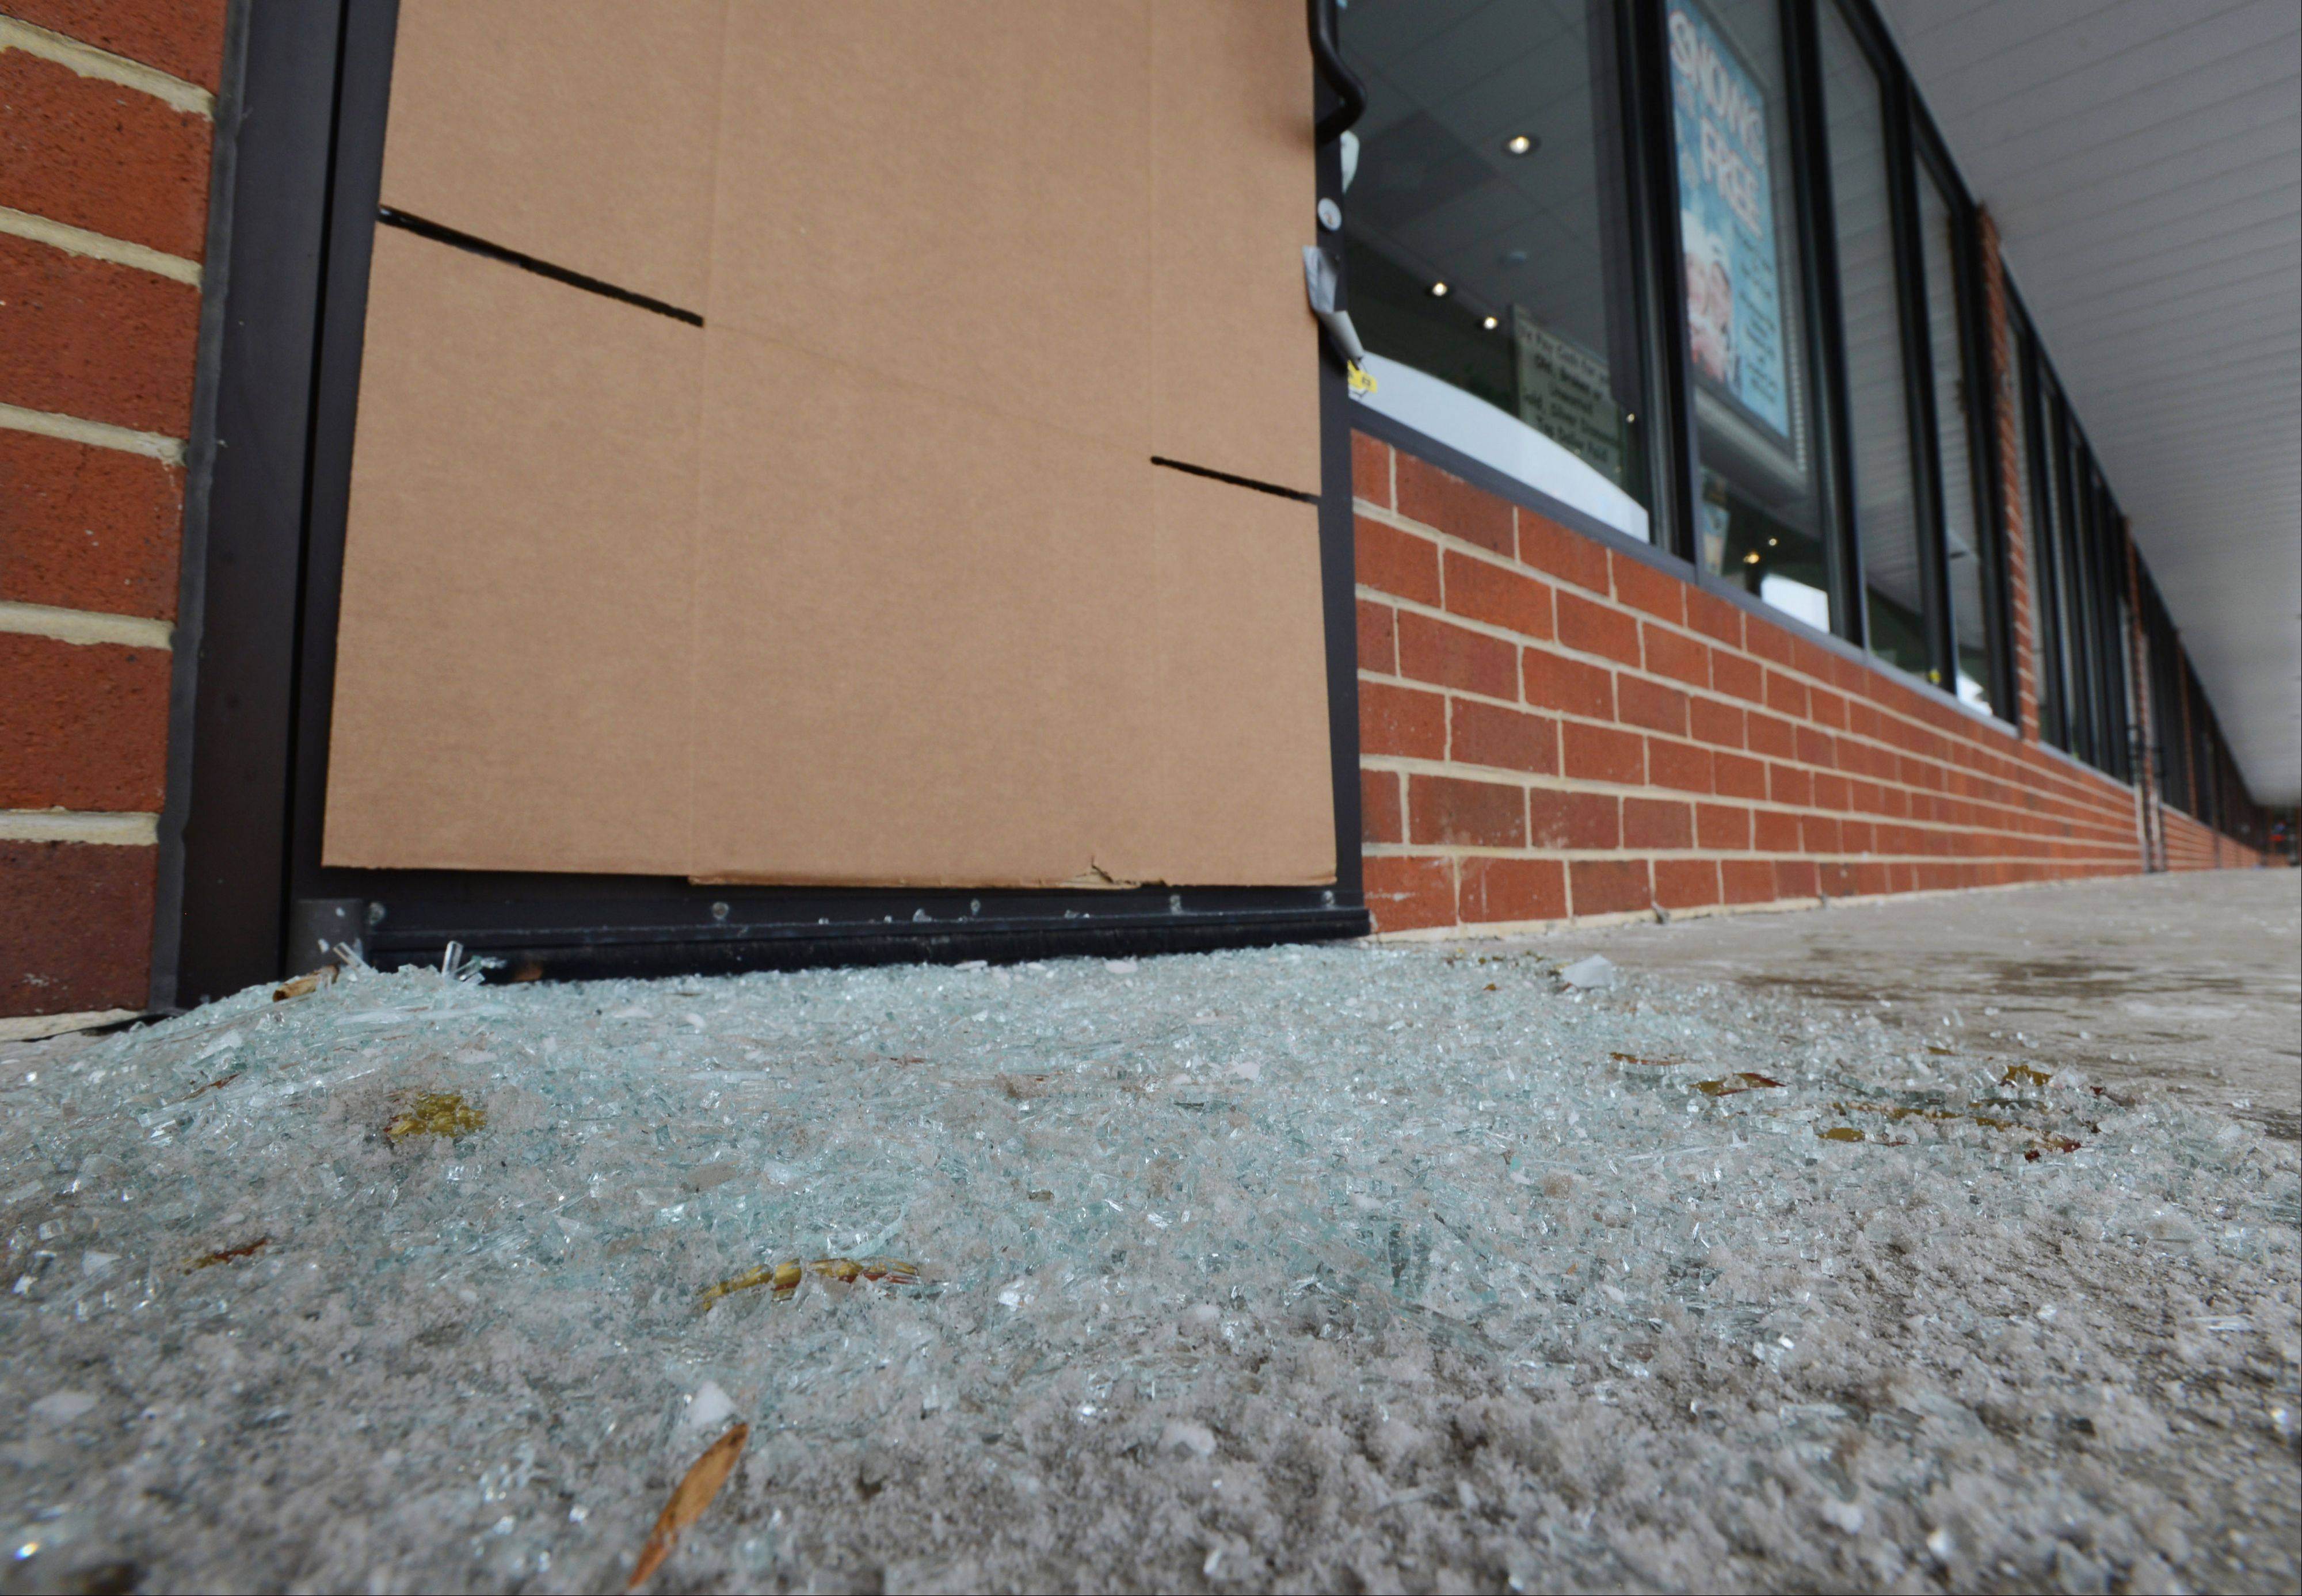 A pile of broken glass remains outside the main entrance to P.K. Bennett Jewelers in Mundelein Tuesday morning after burglars smashed the front door and several display cases before stealing merchandise inside the store. The store made headlines in recent days because of a New Year's Day snow promotion.